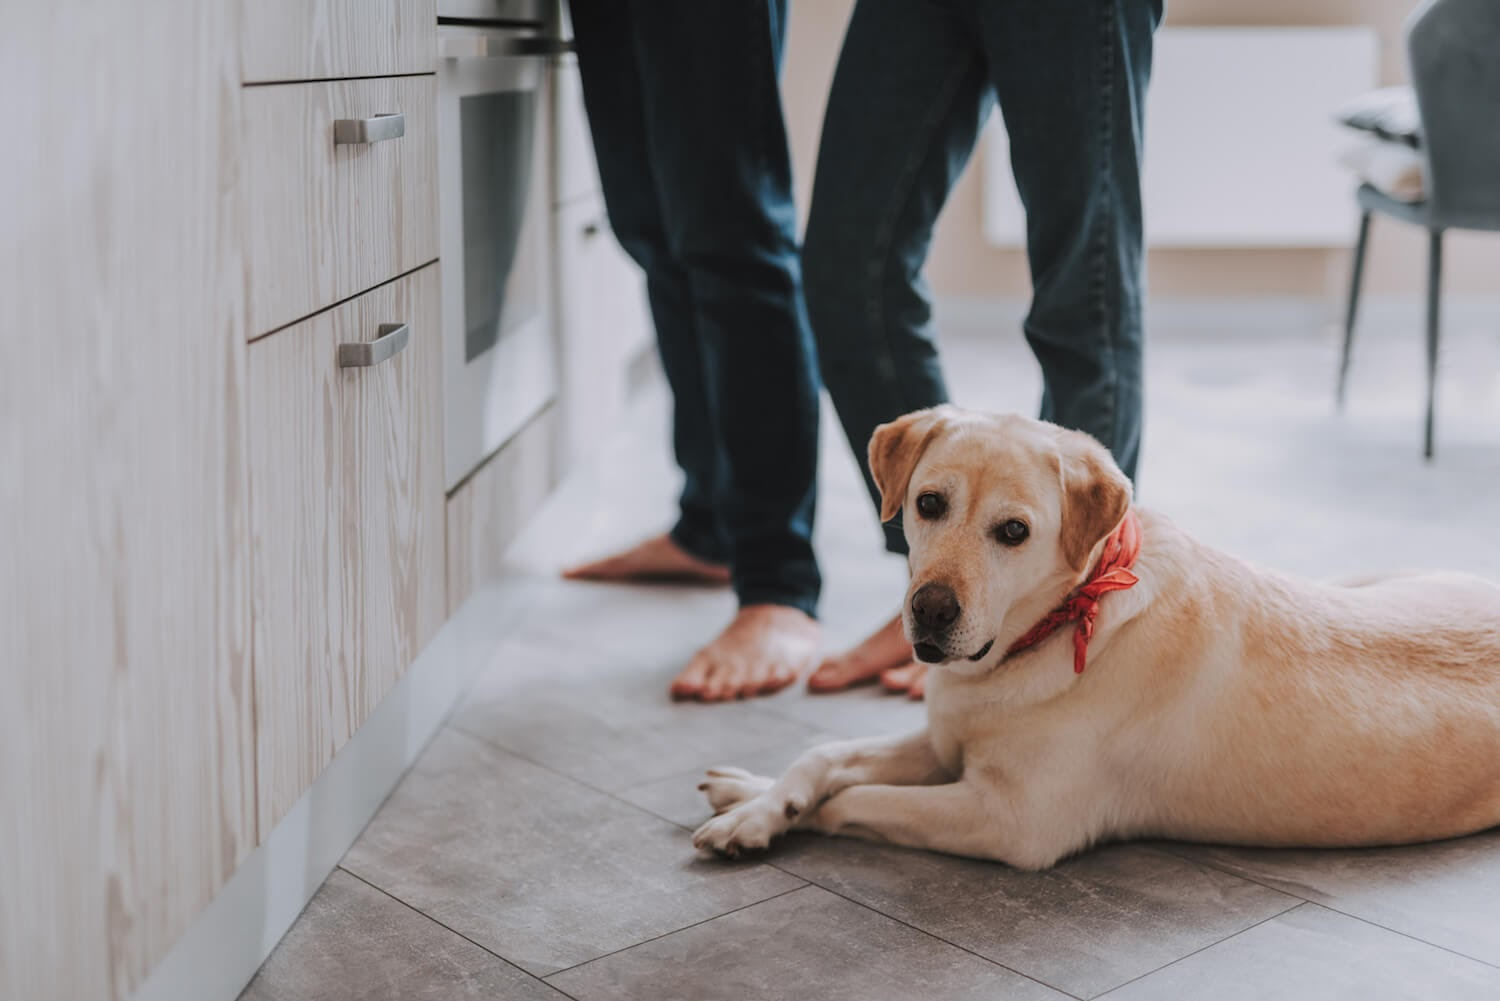 Dog laying on floor in the kitchen